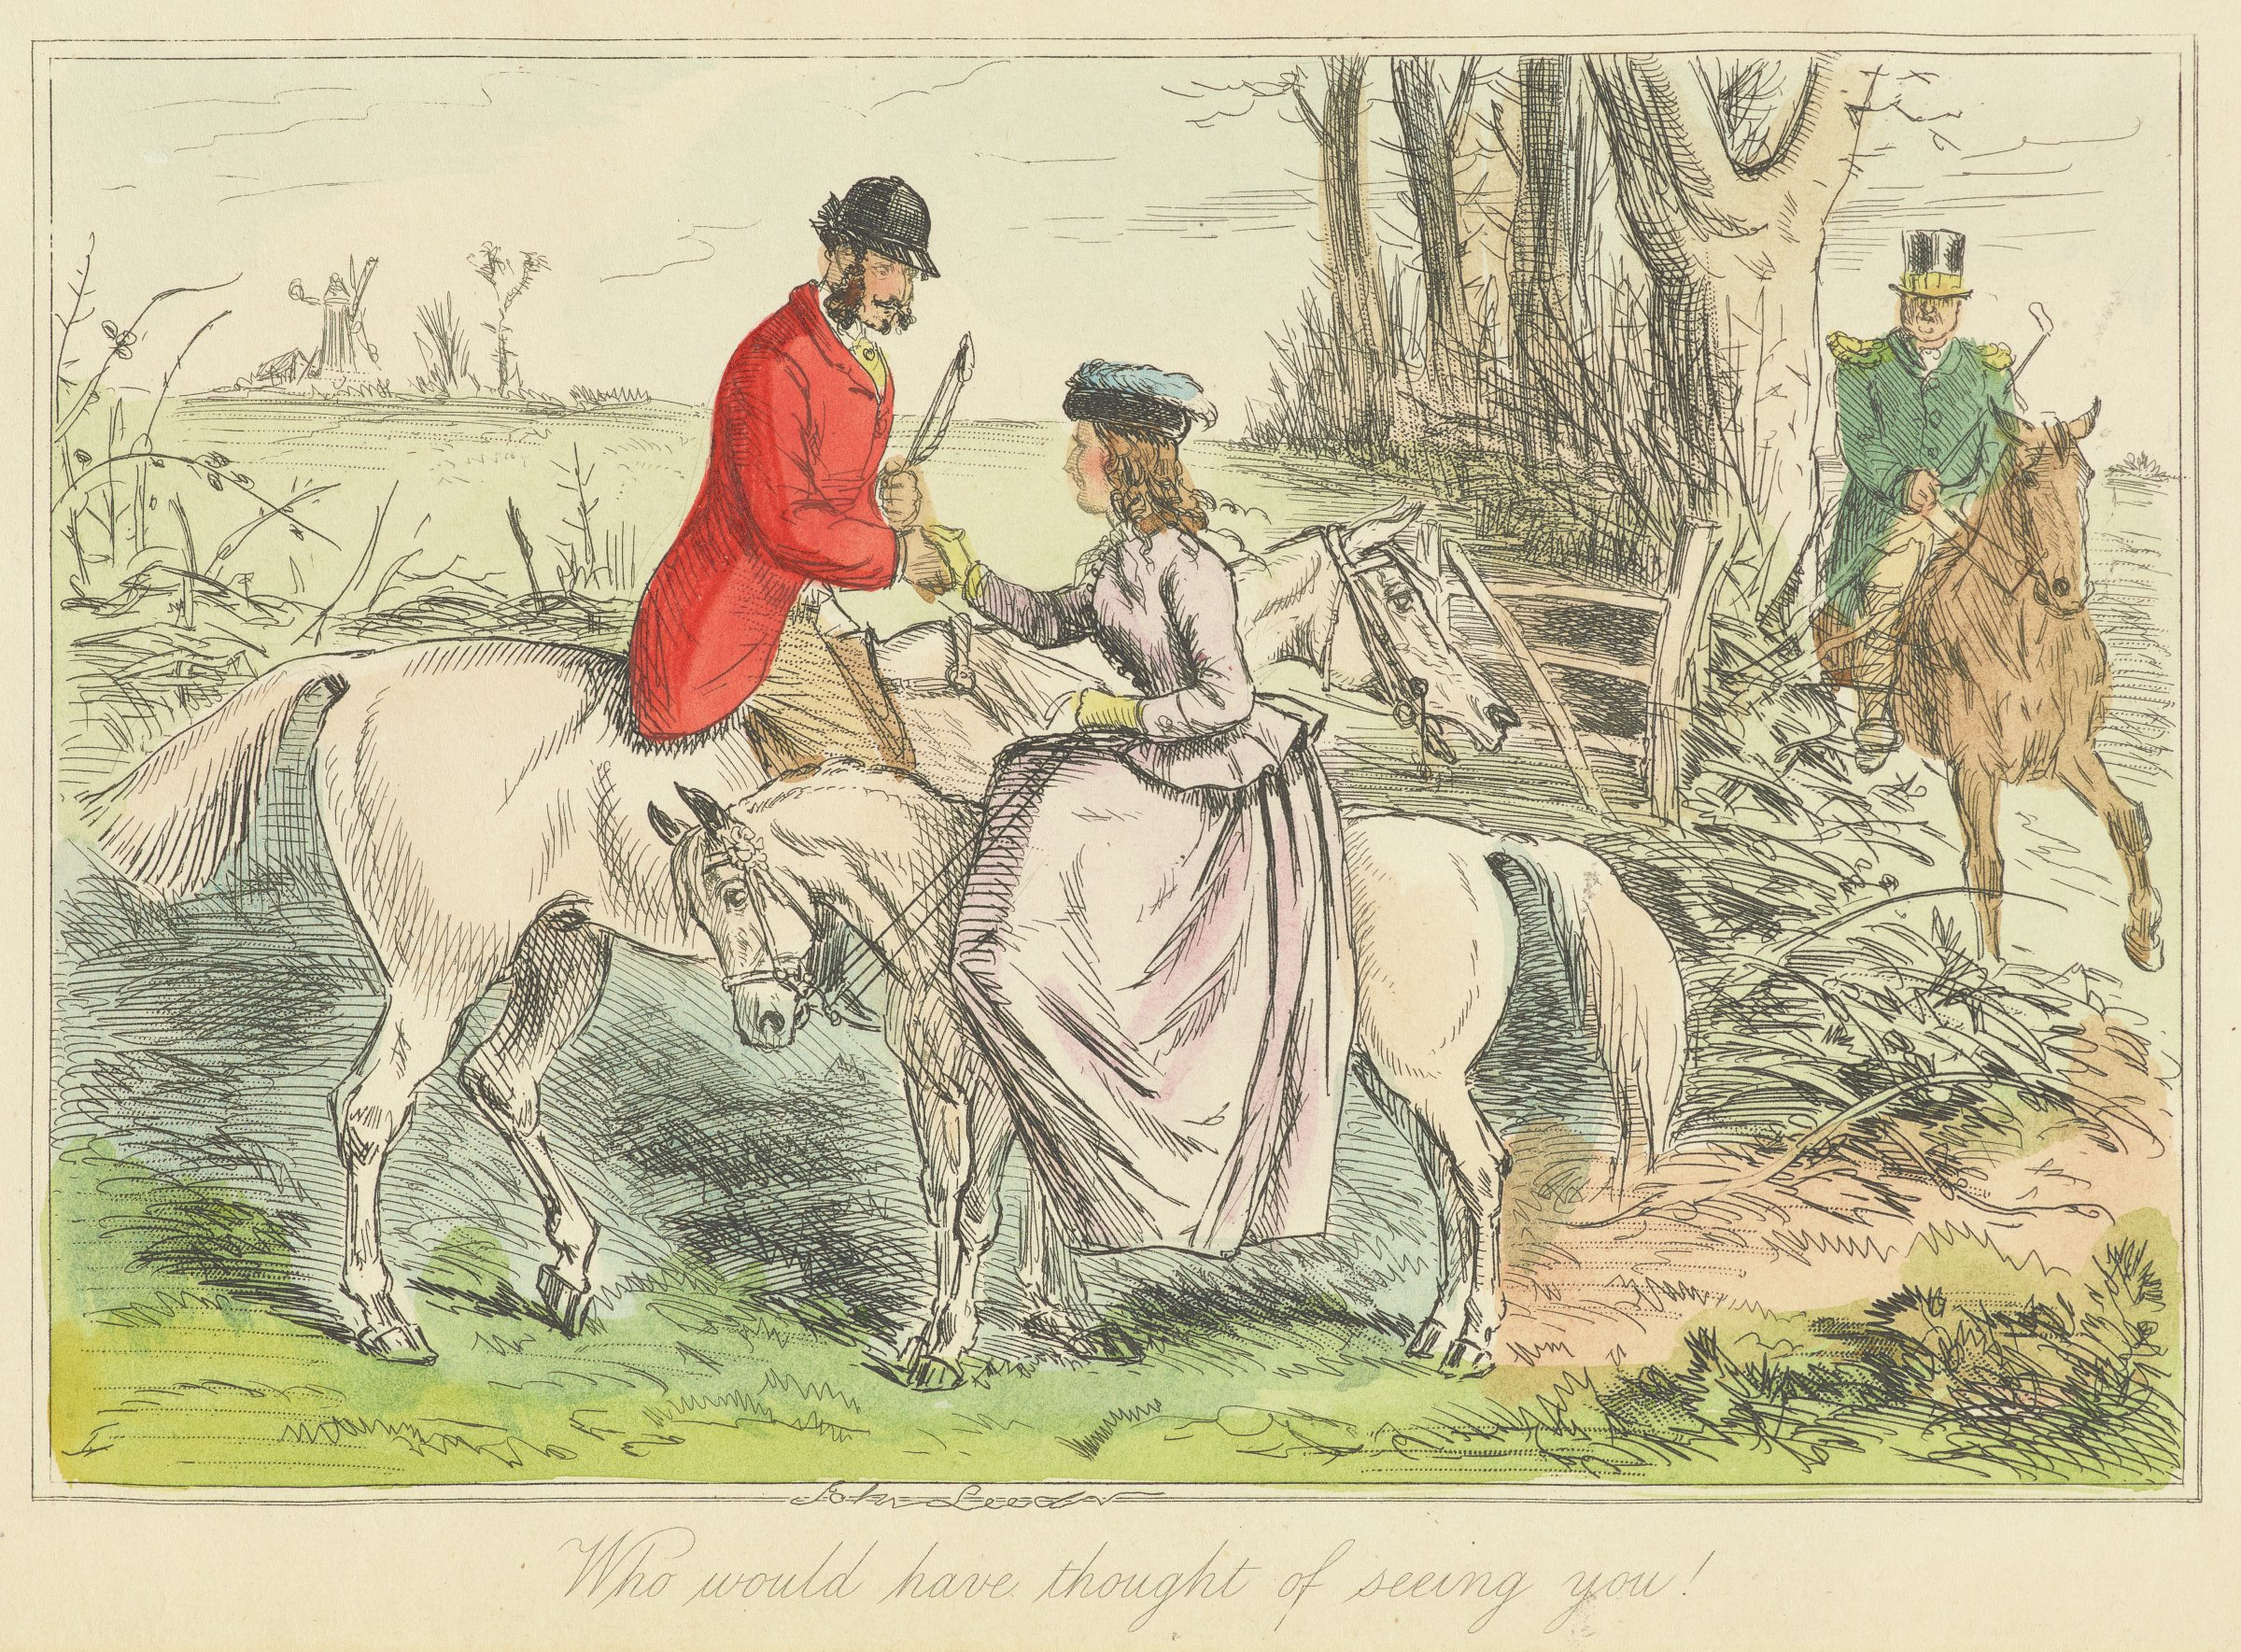 A gentleman in a red coat and black hat rides a white horse. They pass by a woman who rides a smaller white horse. They shake hands as the pass one another. A third figure, a gentleman in a green jacket, rides a brown horse behind them on the right side of the composition.